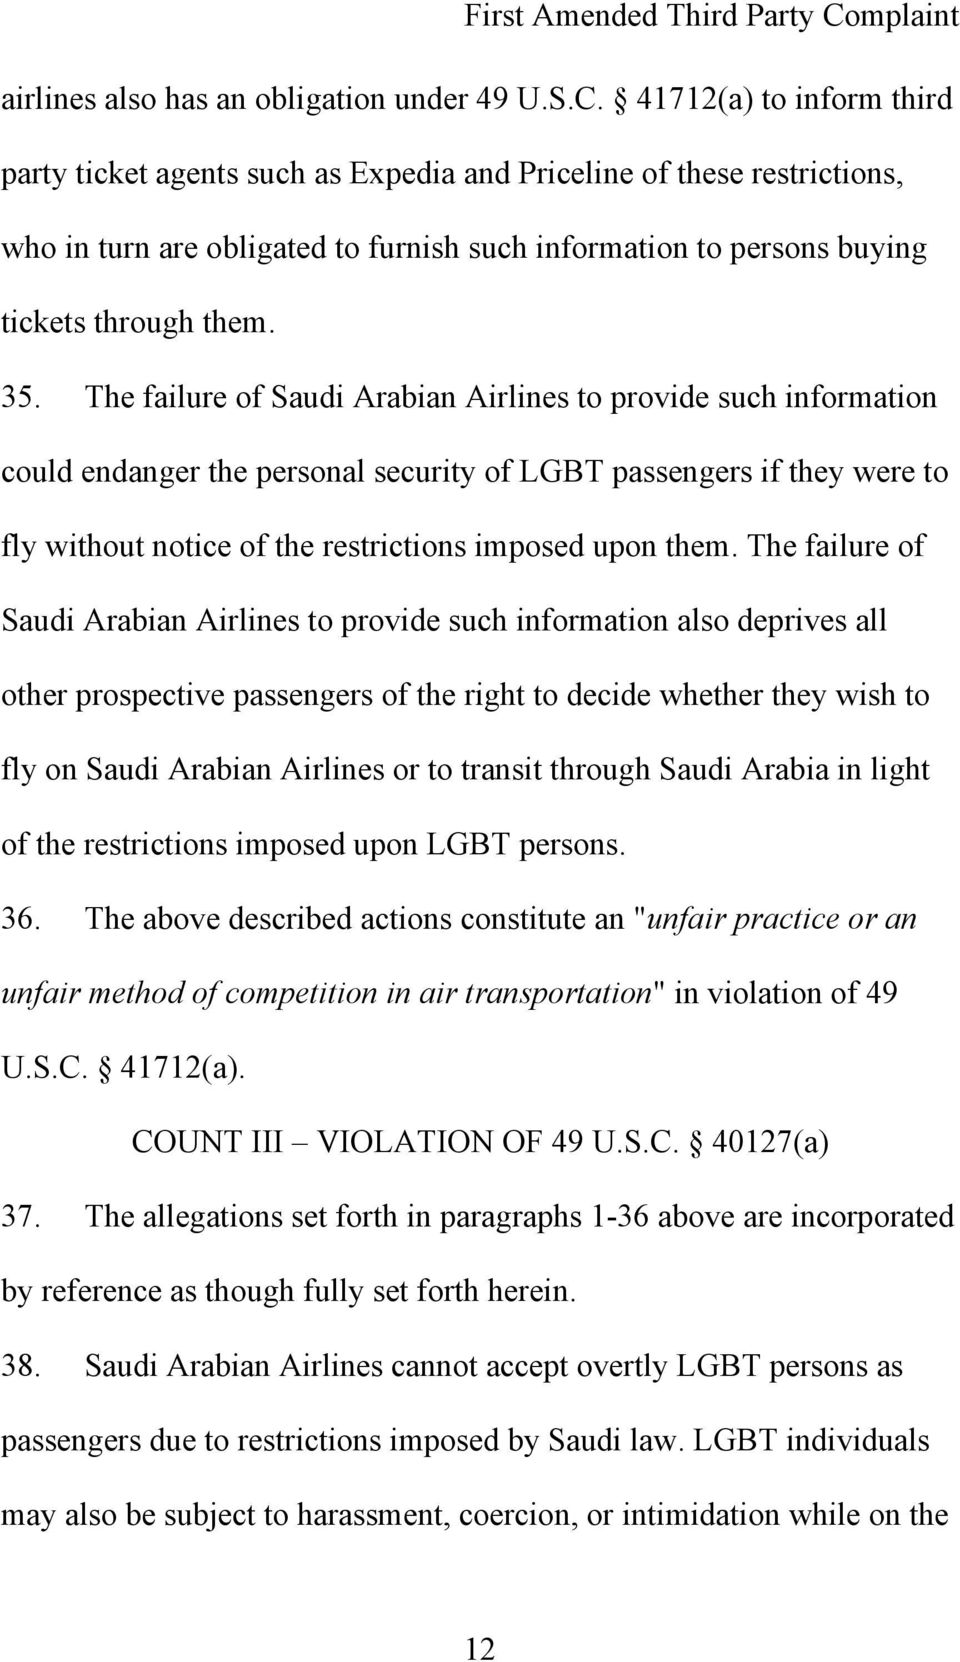 The failure of Saudi Arabian Airlines to provide such information could endanger the personal security of LGBT passengers if they were to fly without notice of the restrictions imposed upon them.